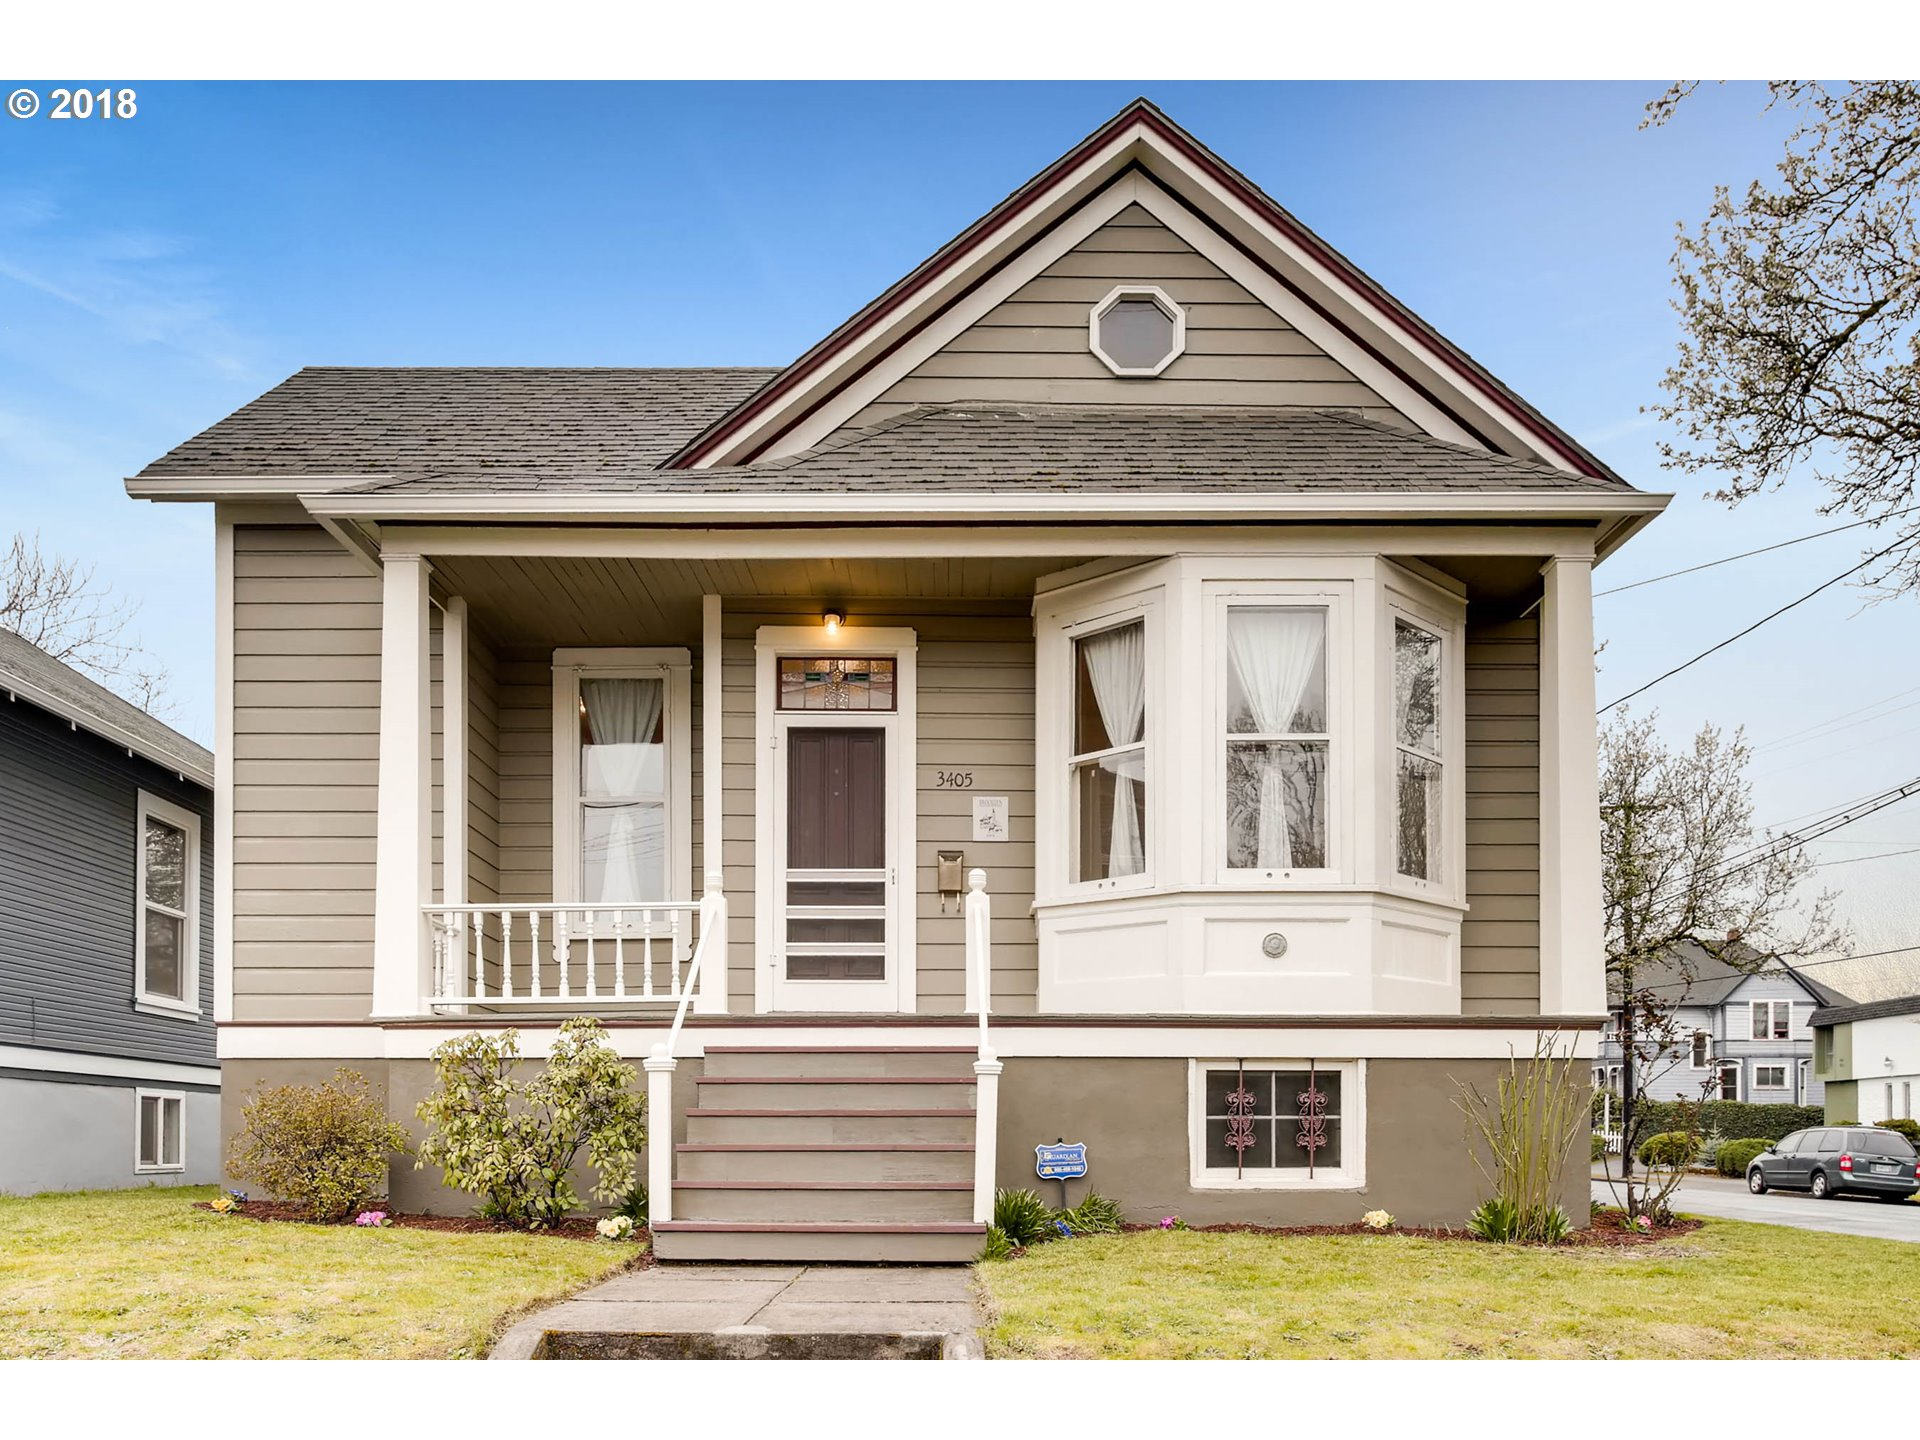 1542 sq. ft 2 bedrooms 1 bathrooms  House For Sale,Portland, OR